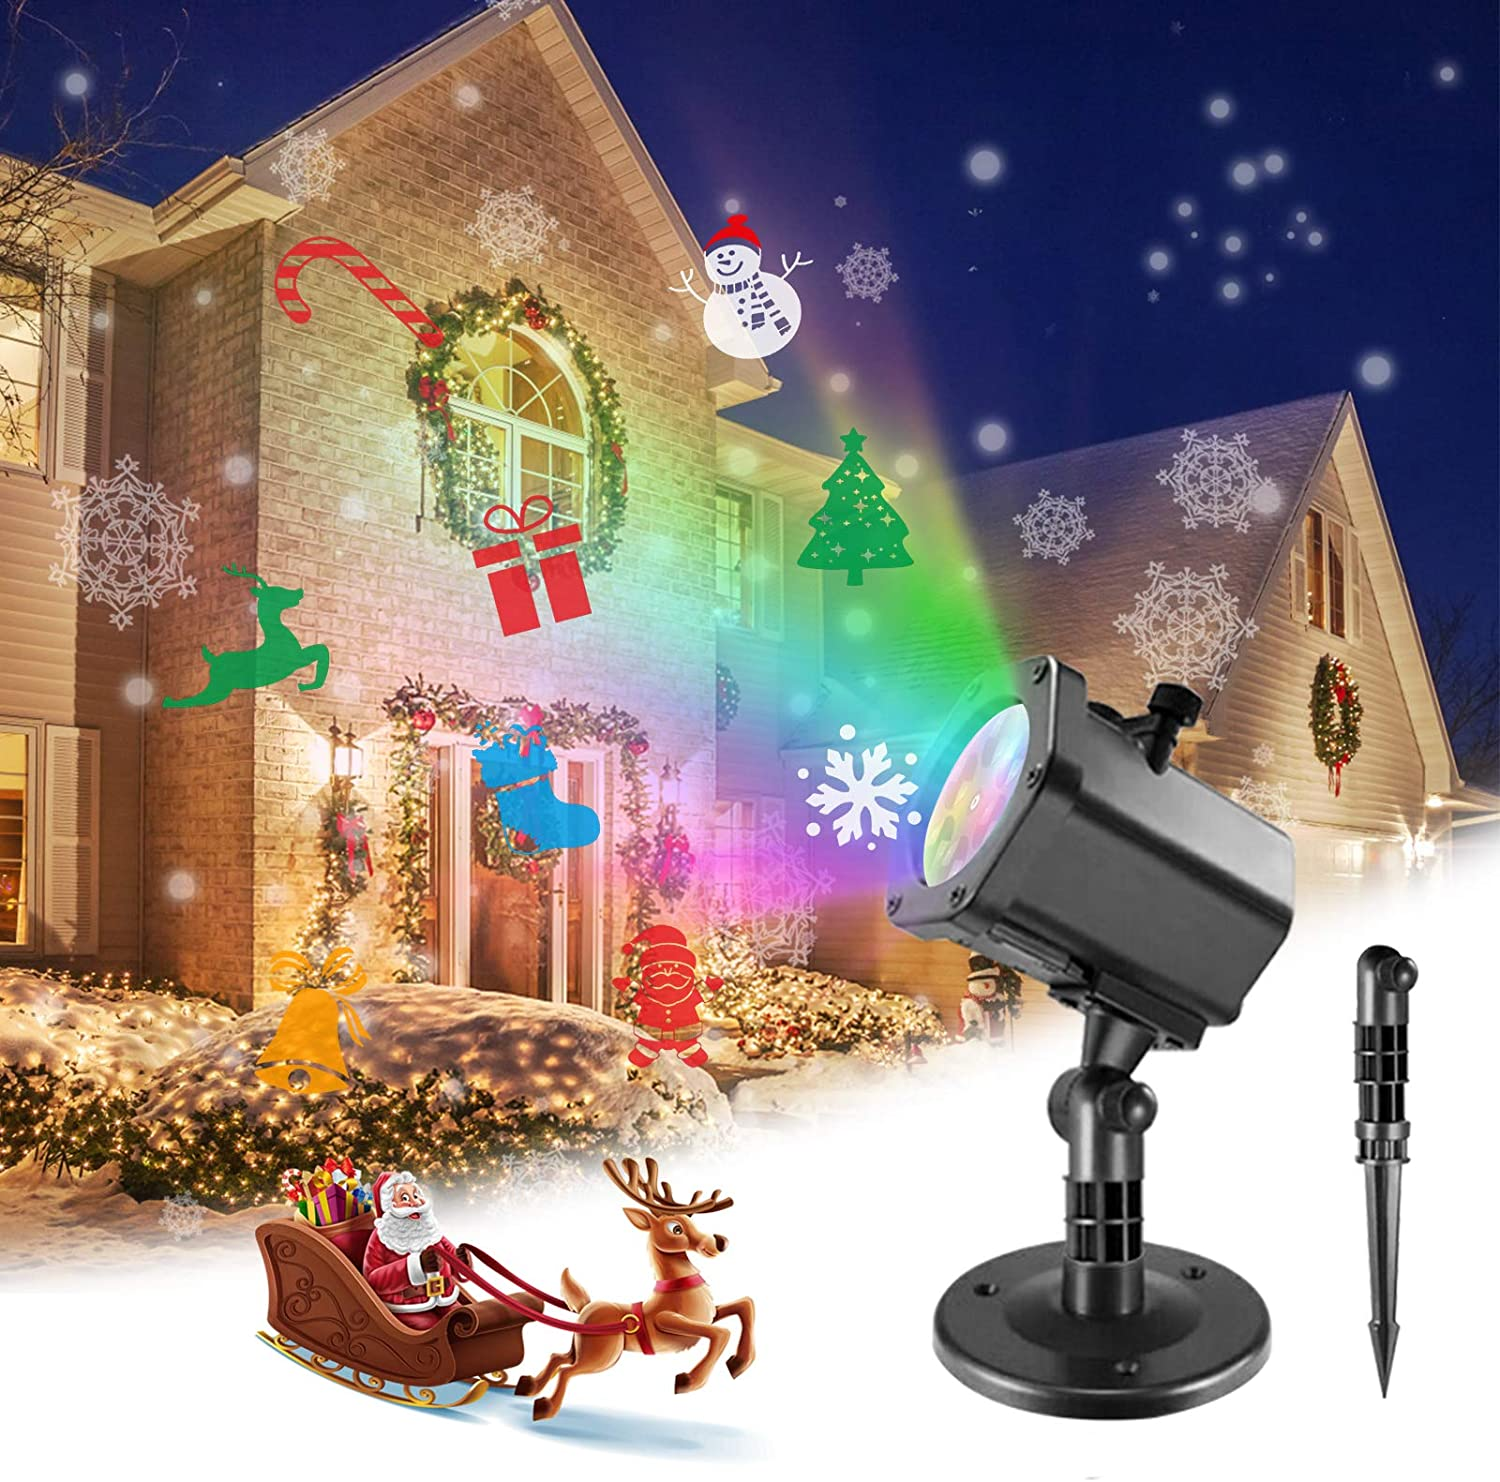 Christmas Projector Lights, FURANDE 12 Patterns LED Projector Lights Decorations Outdoor Indoor, Waterproof Xmas Landscape Lamp Perfect for Theme Party, Home Birthday Party and Garden Decor